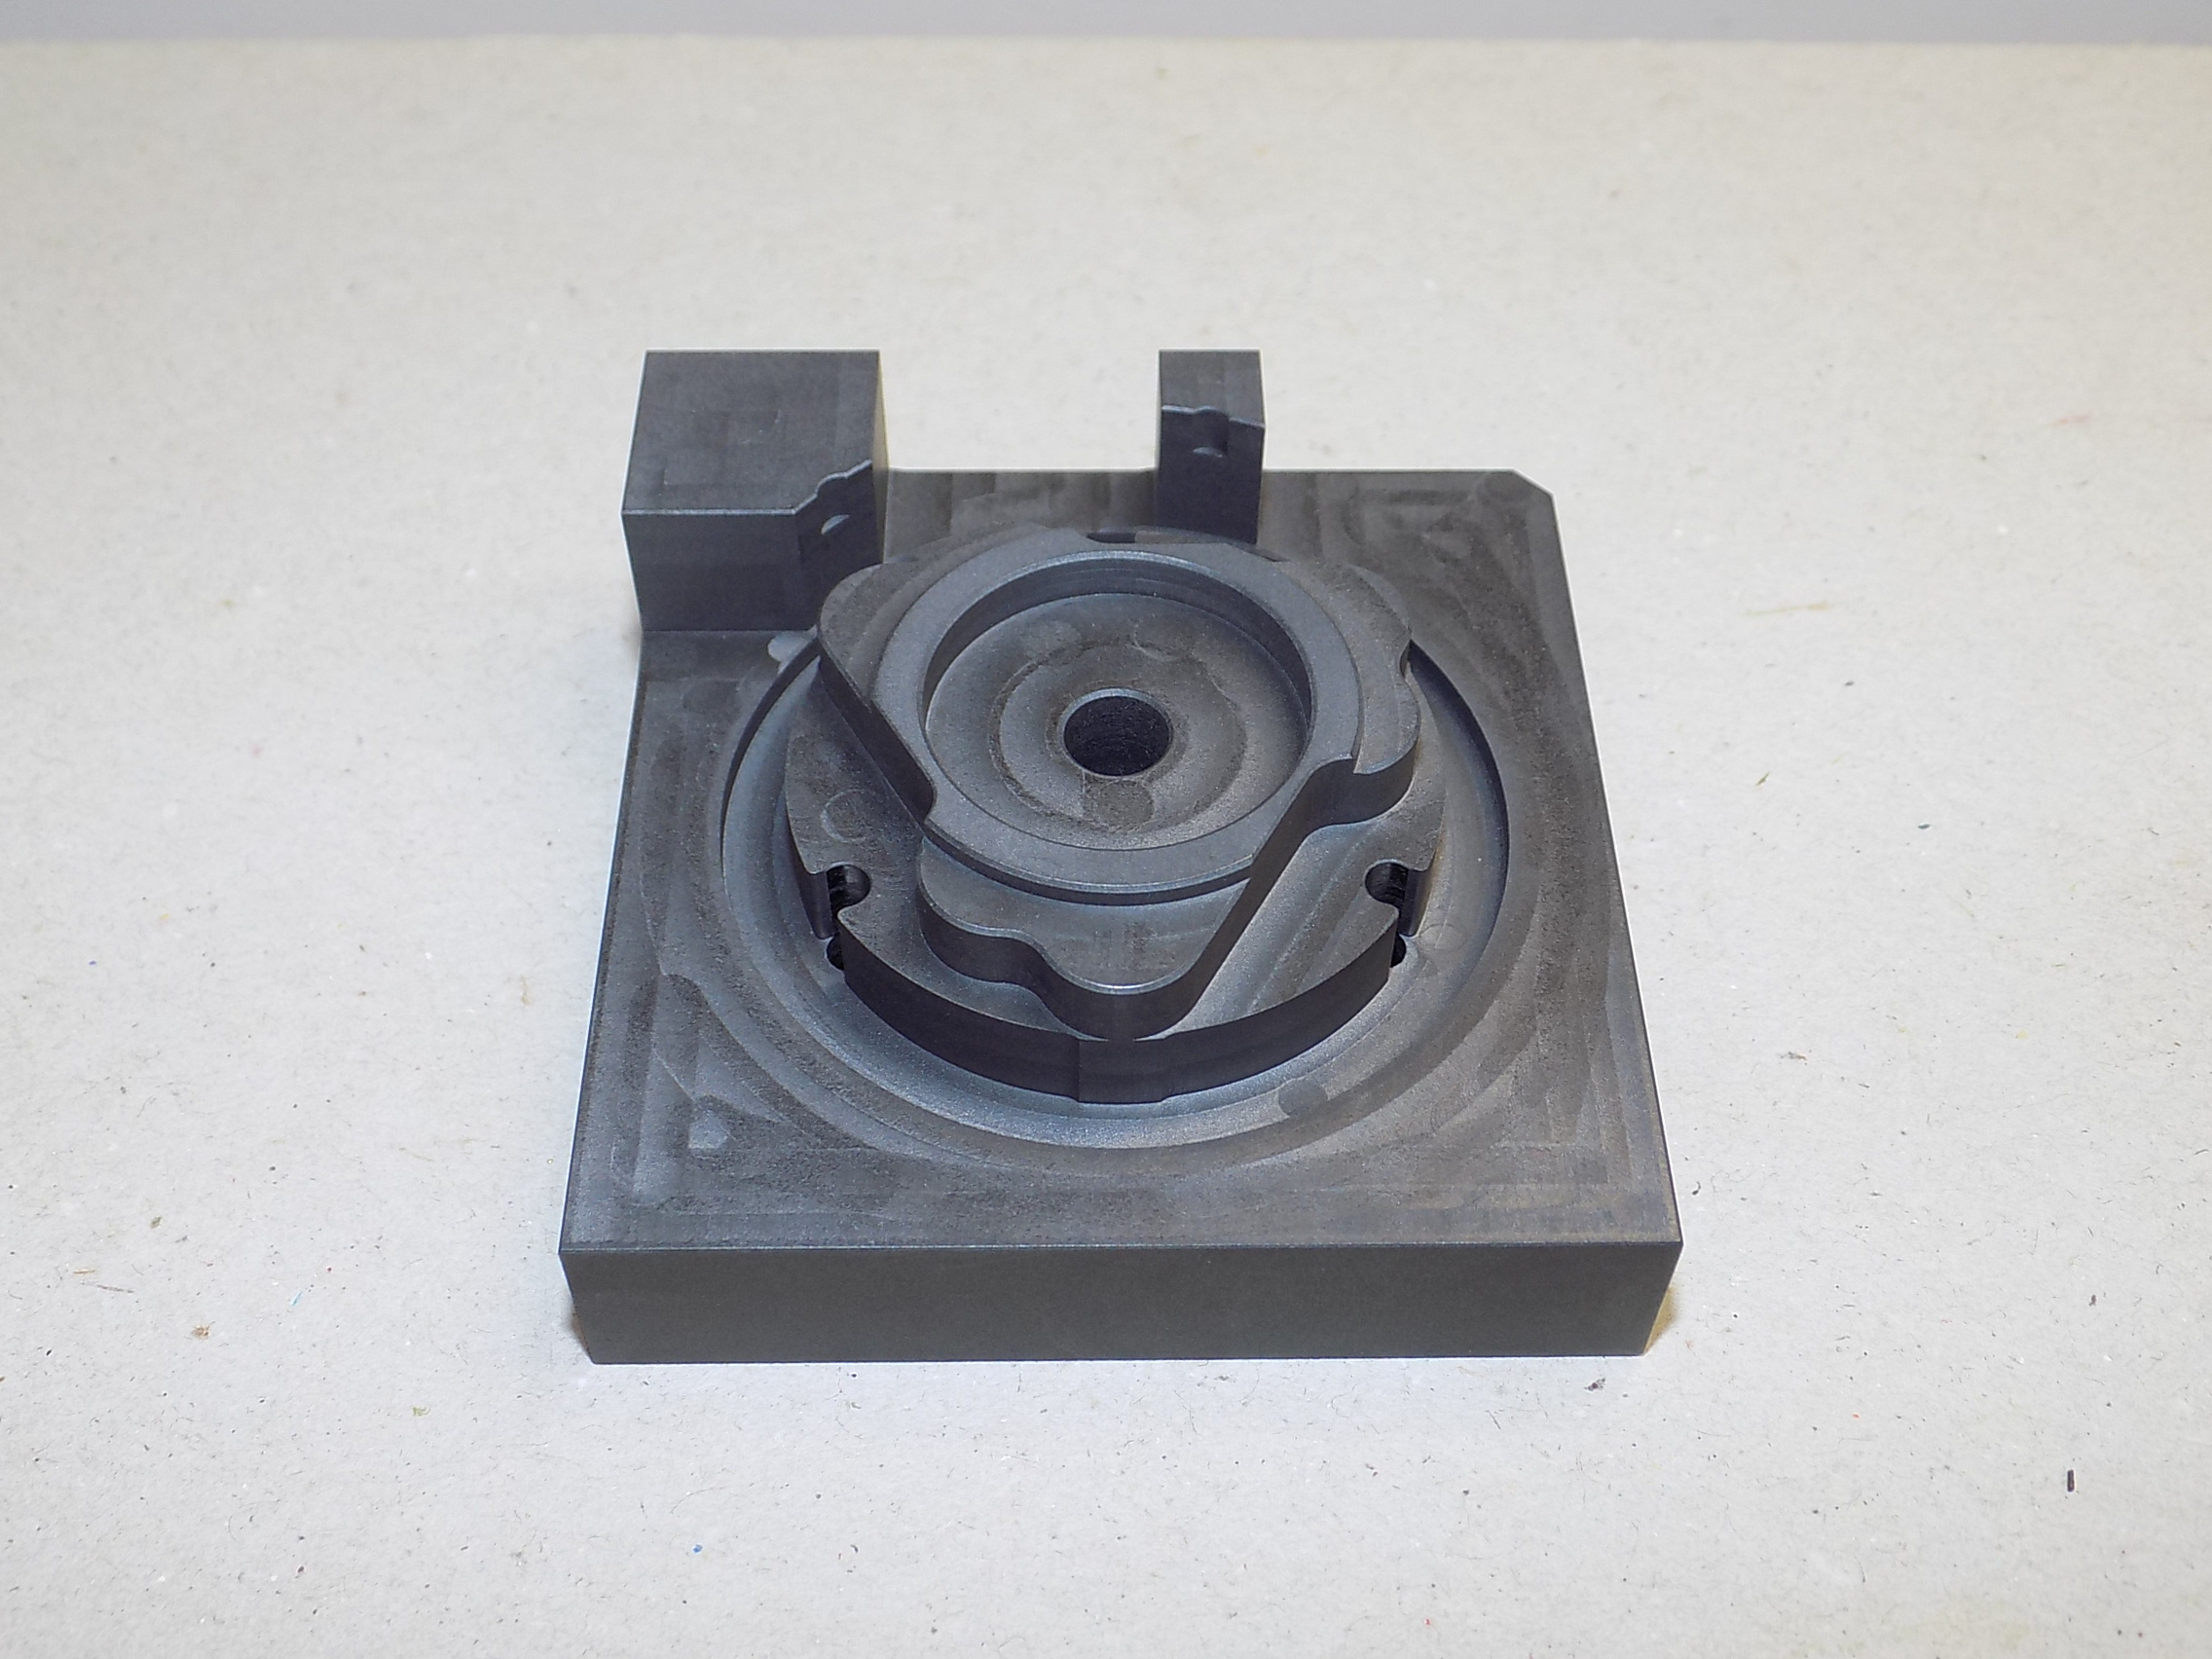 graphite braze fixture- bottom